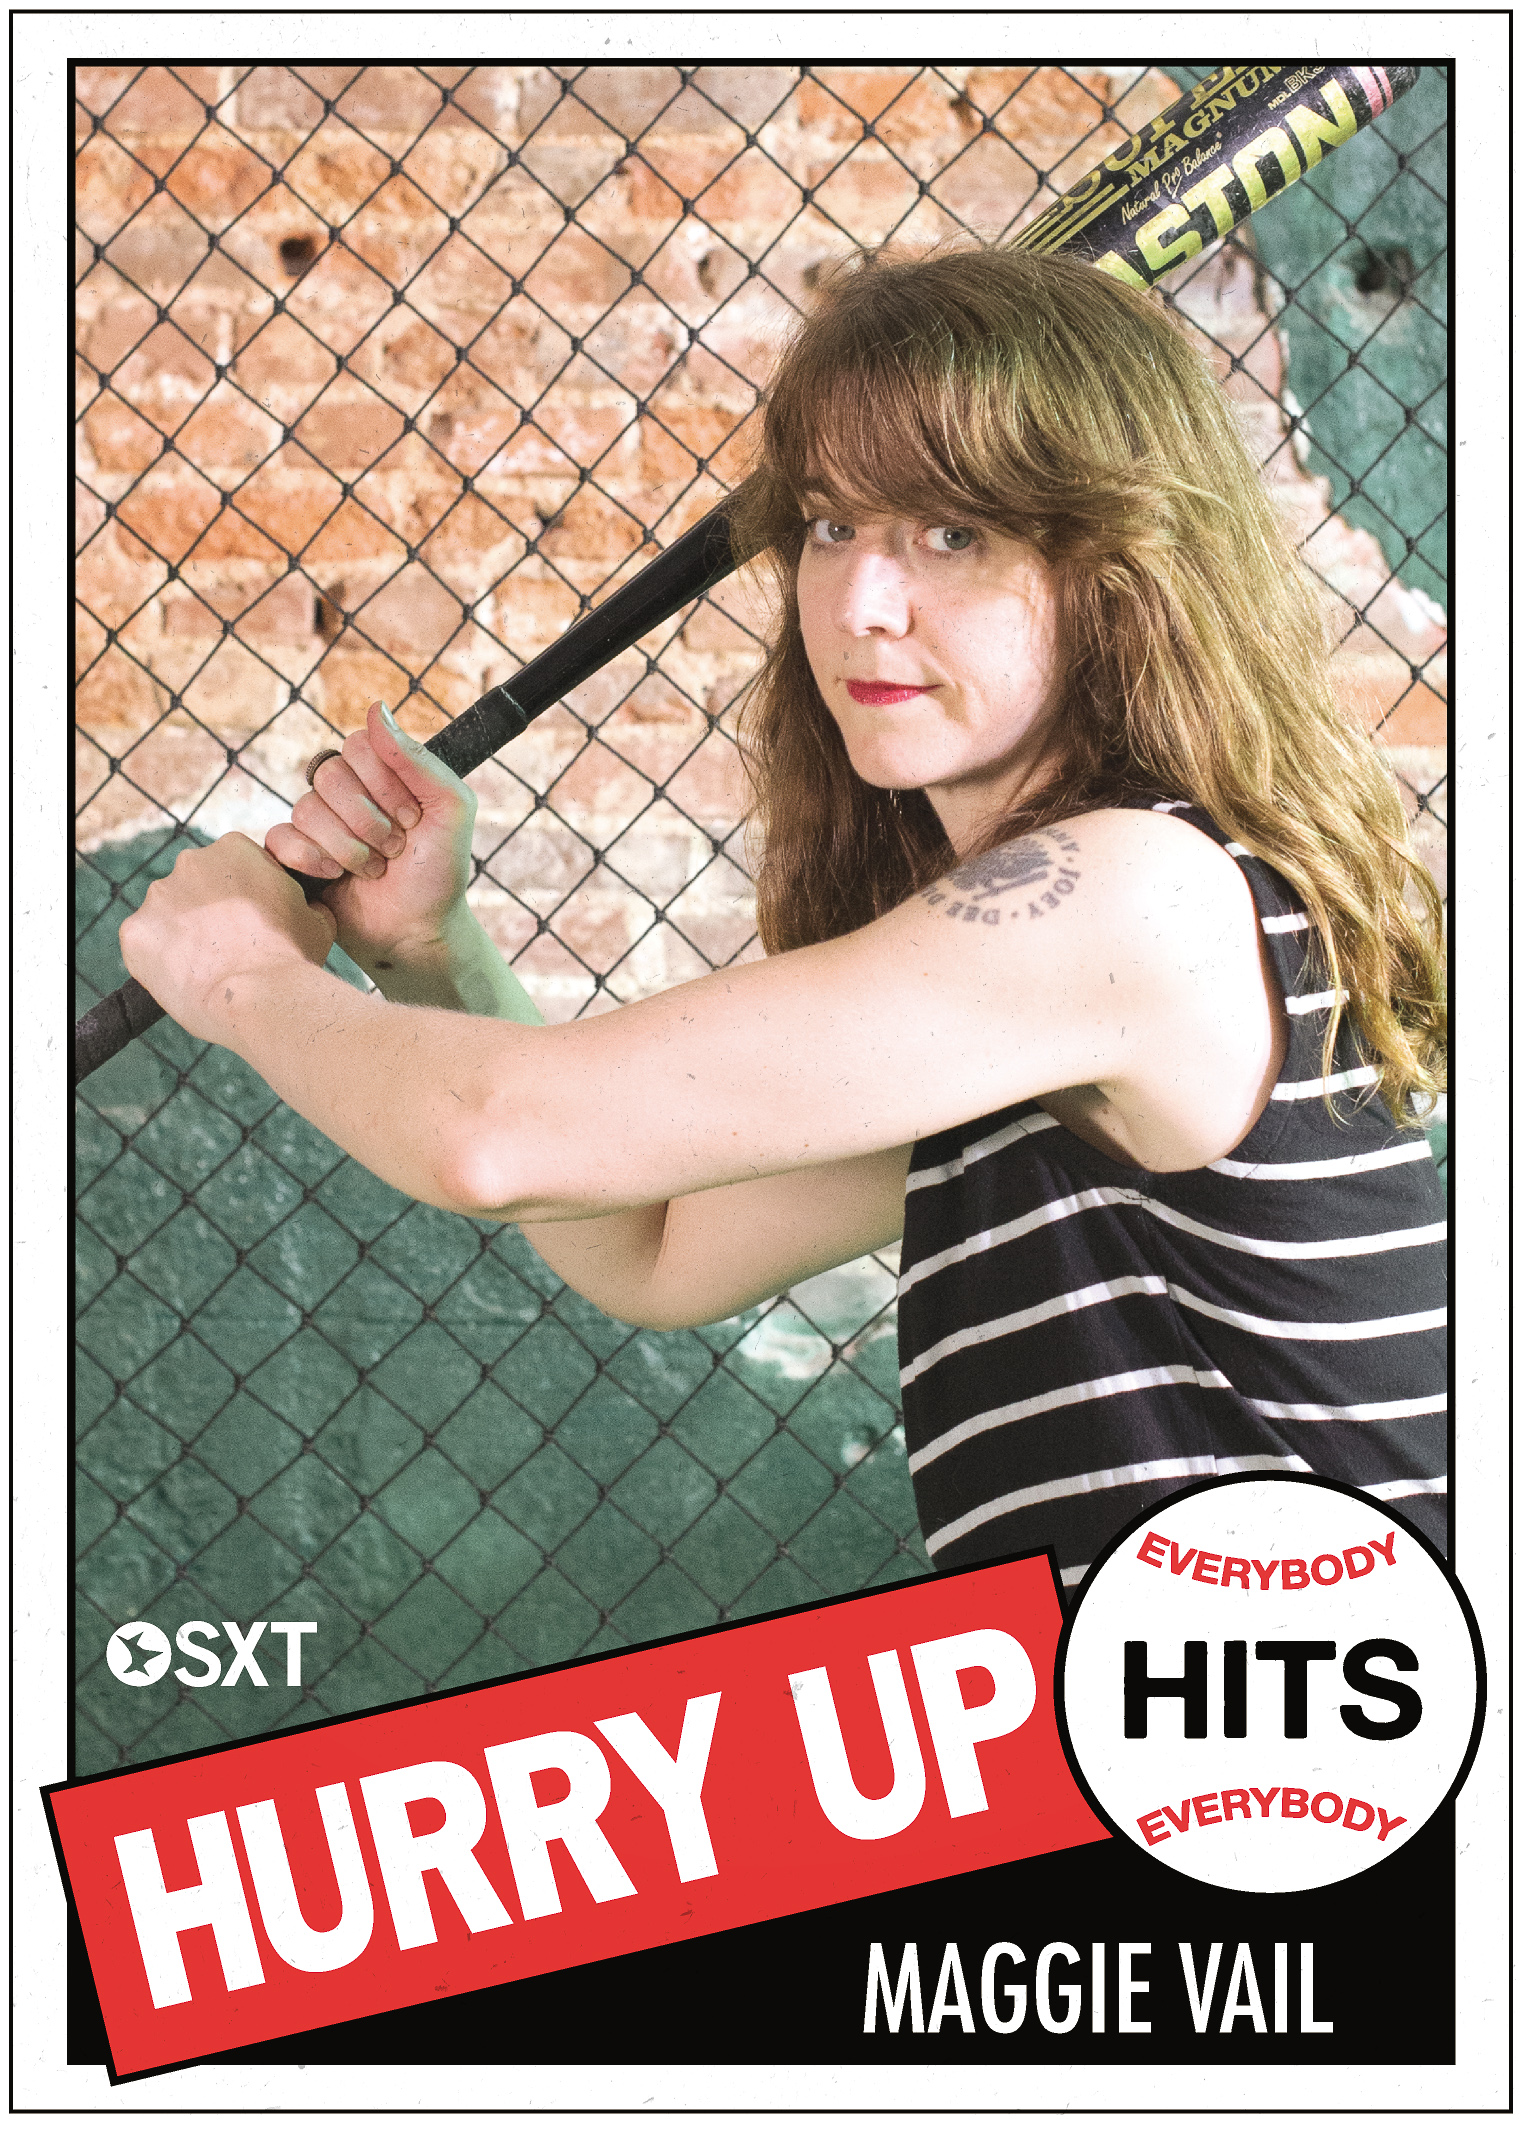 Maggie Vail of Hurry Up